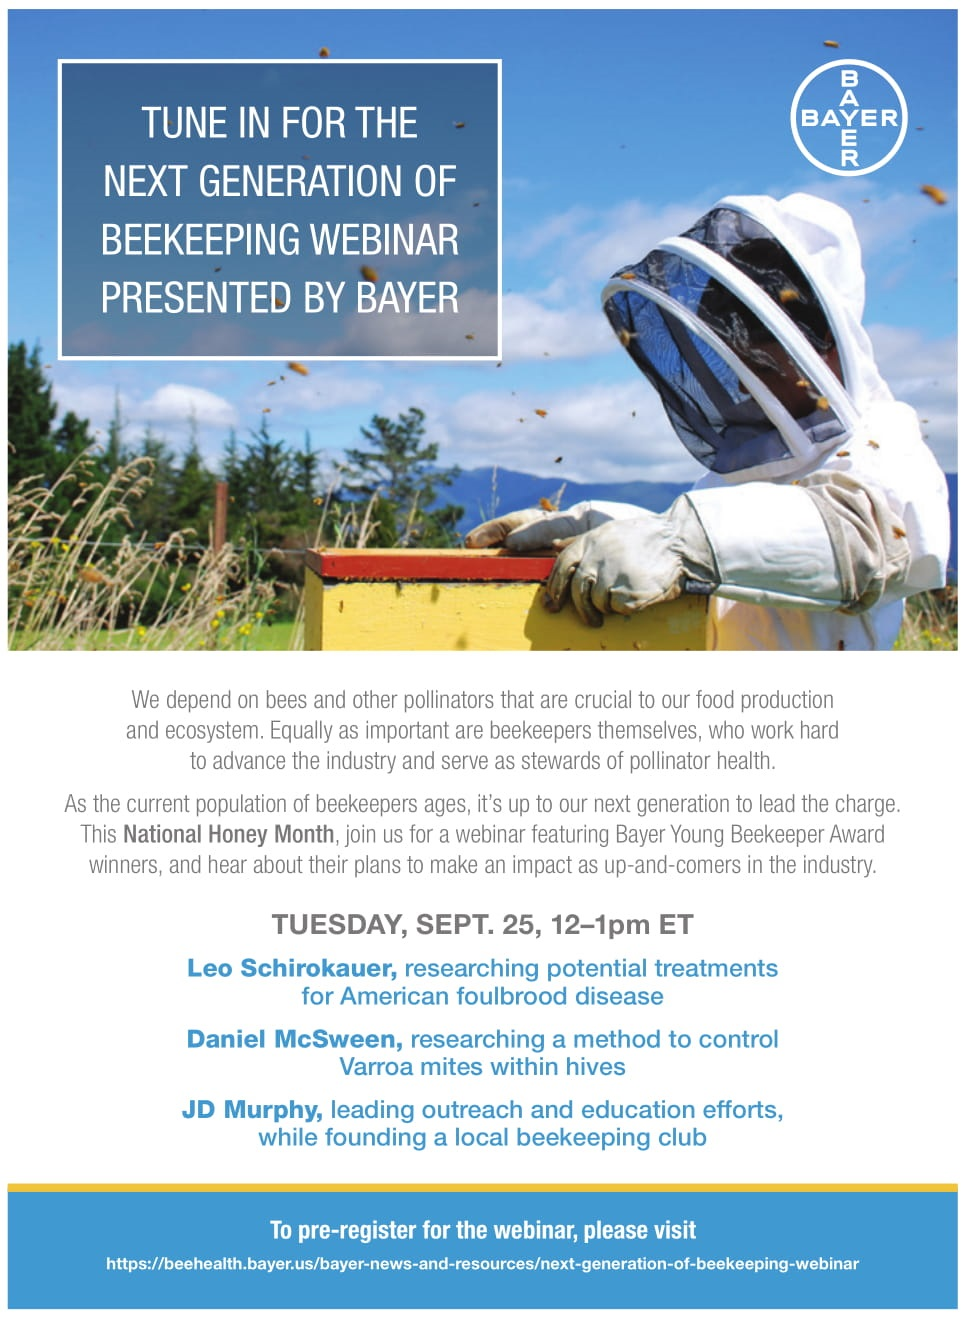 CATCH THE BUZZ – The Kim & Jim Show – The Next Generation of Beekeeping – Presented by Bayer – September 25, 2018 @ 12pm EST